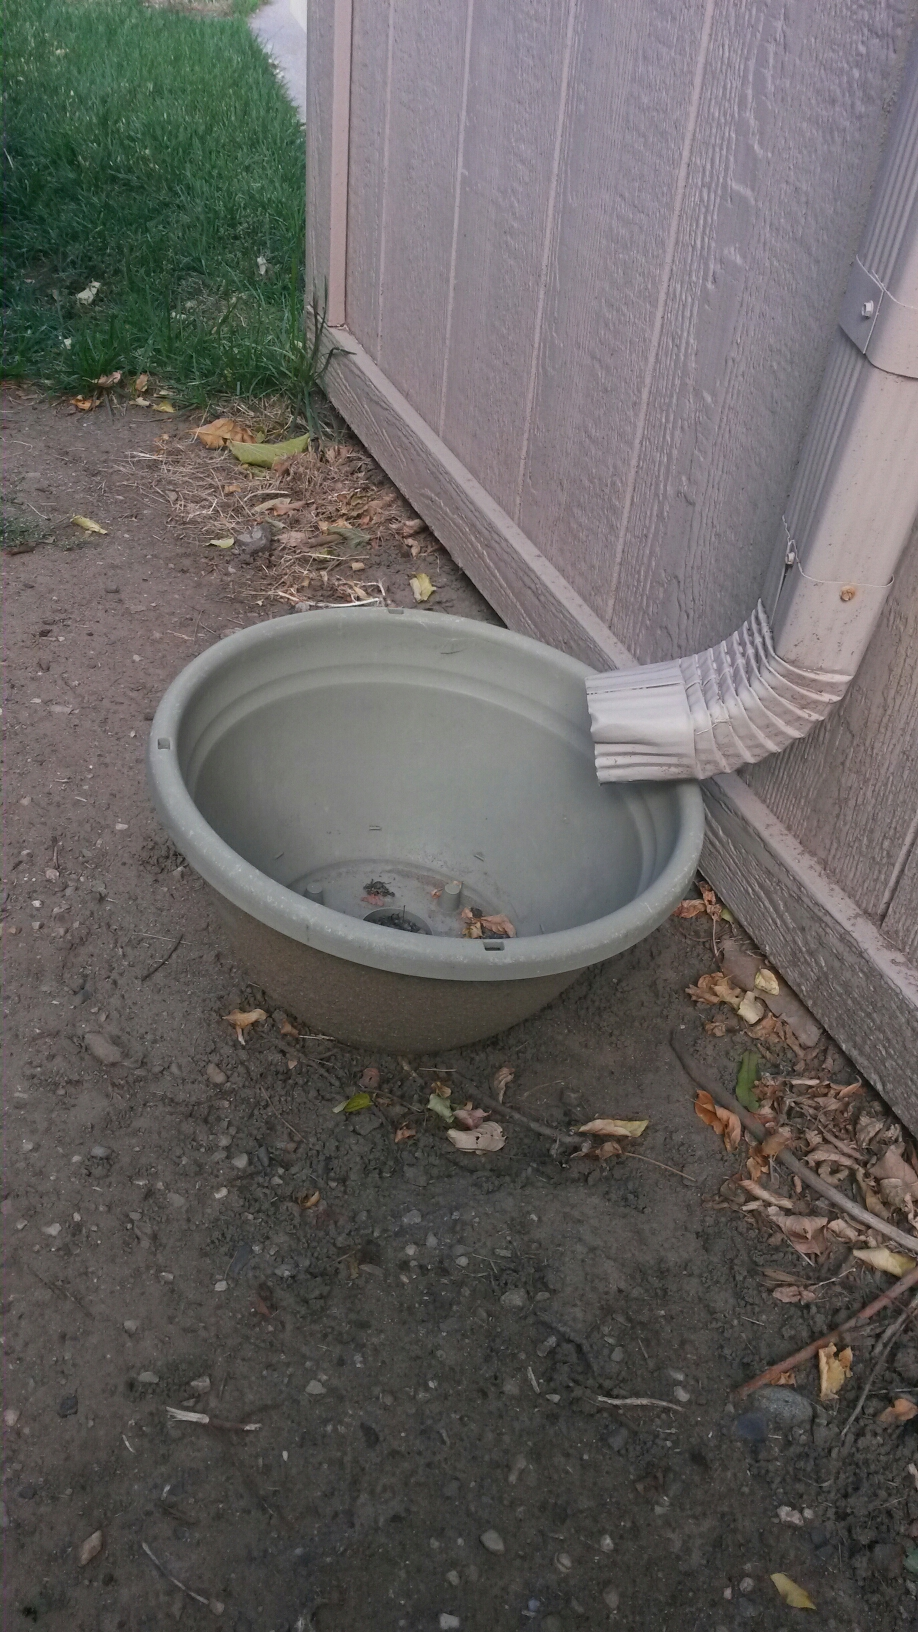 Cottonwood Heights, UT - There are a lot of systems that make up our homes. When they work everything is good. When they don't work it can lead to problems. The picture shows a system that is not good. It's a downspout from a rain gutter that empties into a bucket, and a negative slope towards the house. This is not a good system, it could lead to water damage and possible mold.